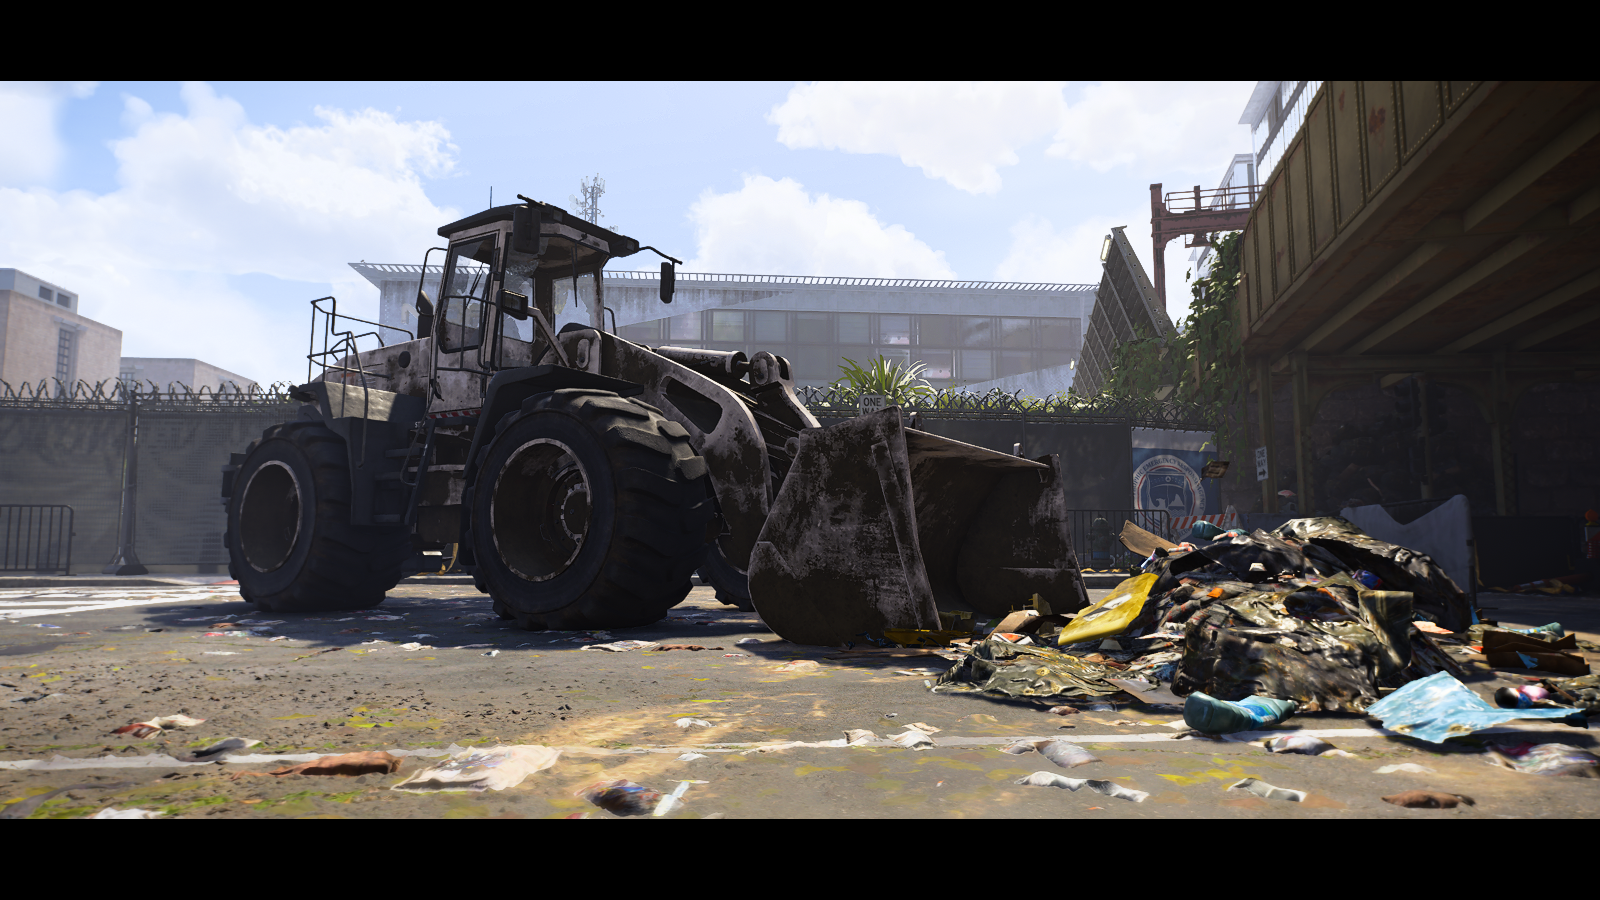 Tom Clancy's The Division 2_20190817_172332.png - Tom Clancy's The Division 2